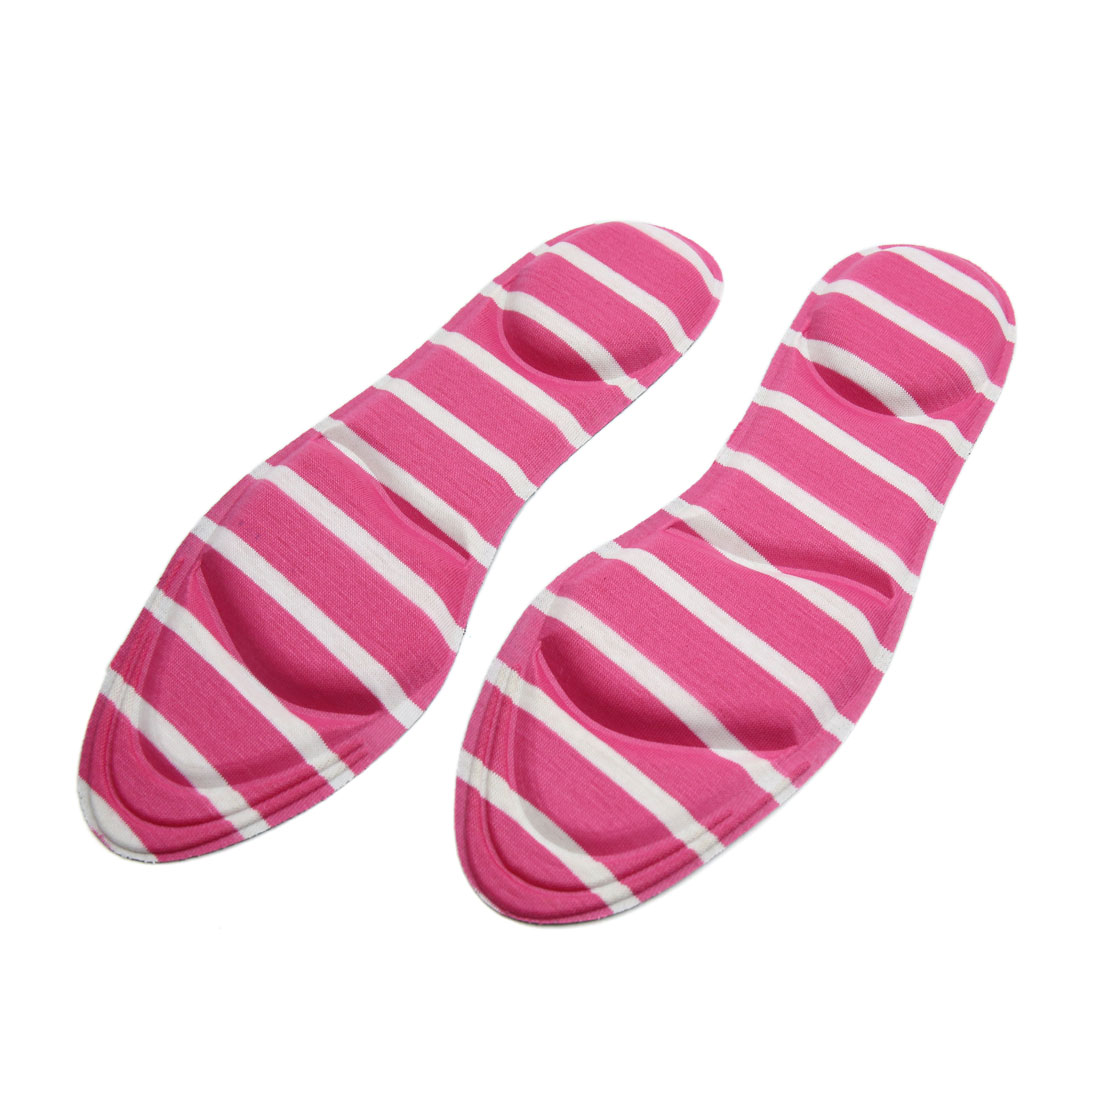 1 Pair Sponge Anti-slip Woman Arch Insert Insoles Shoes Pad Cushion #4